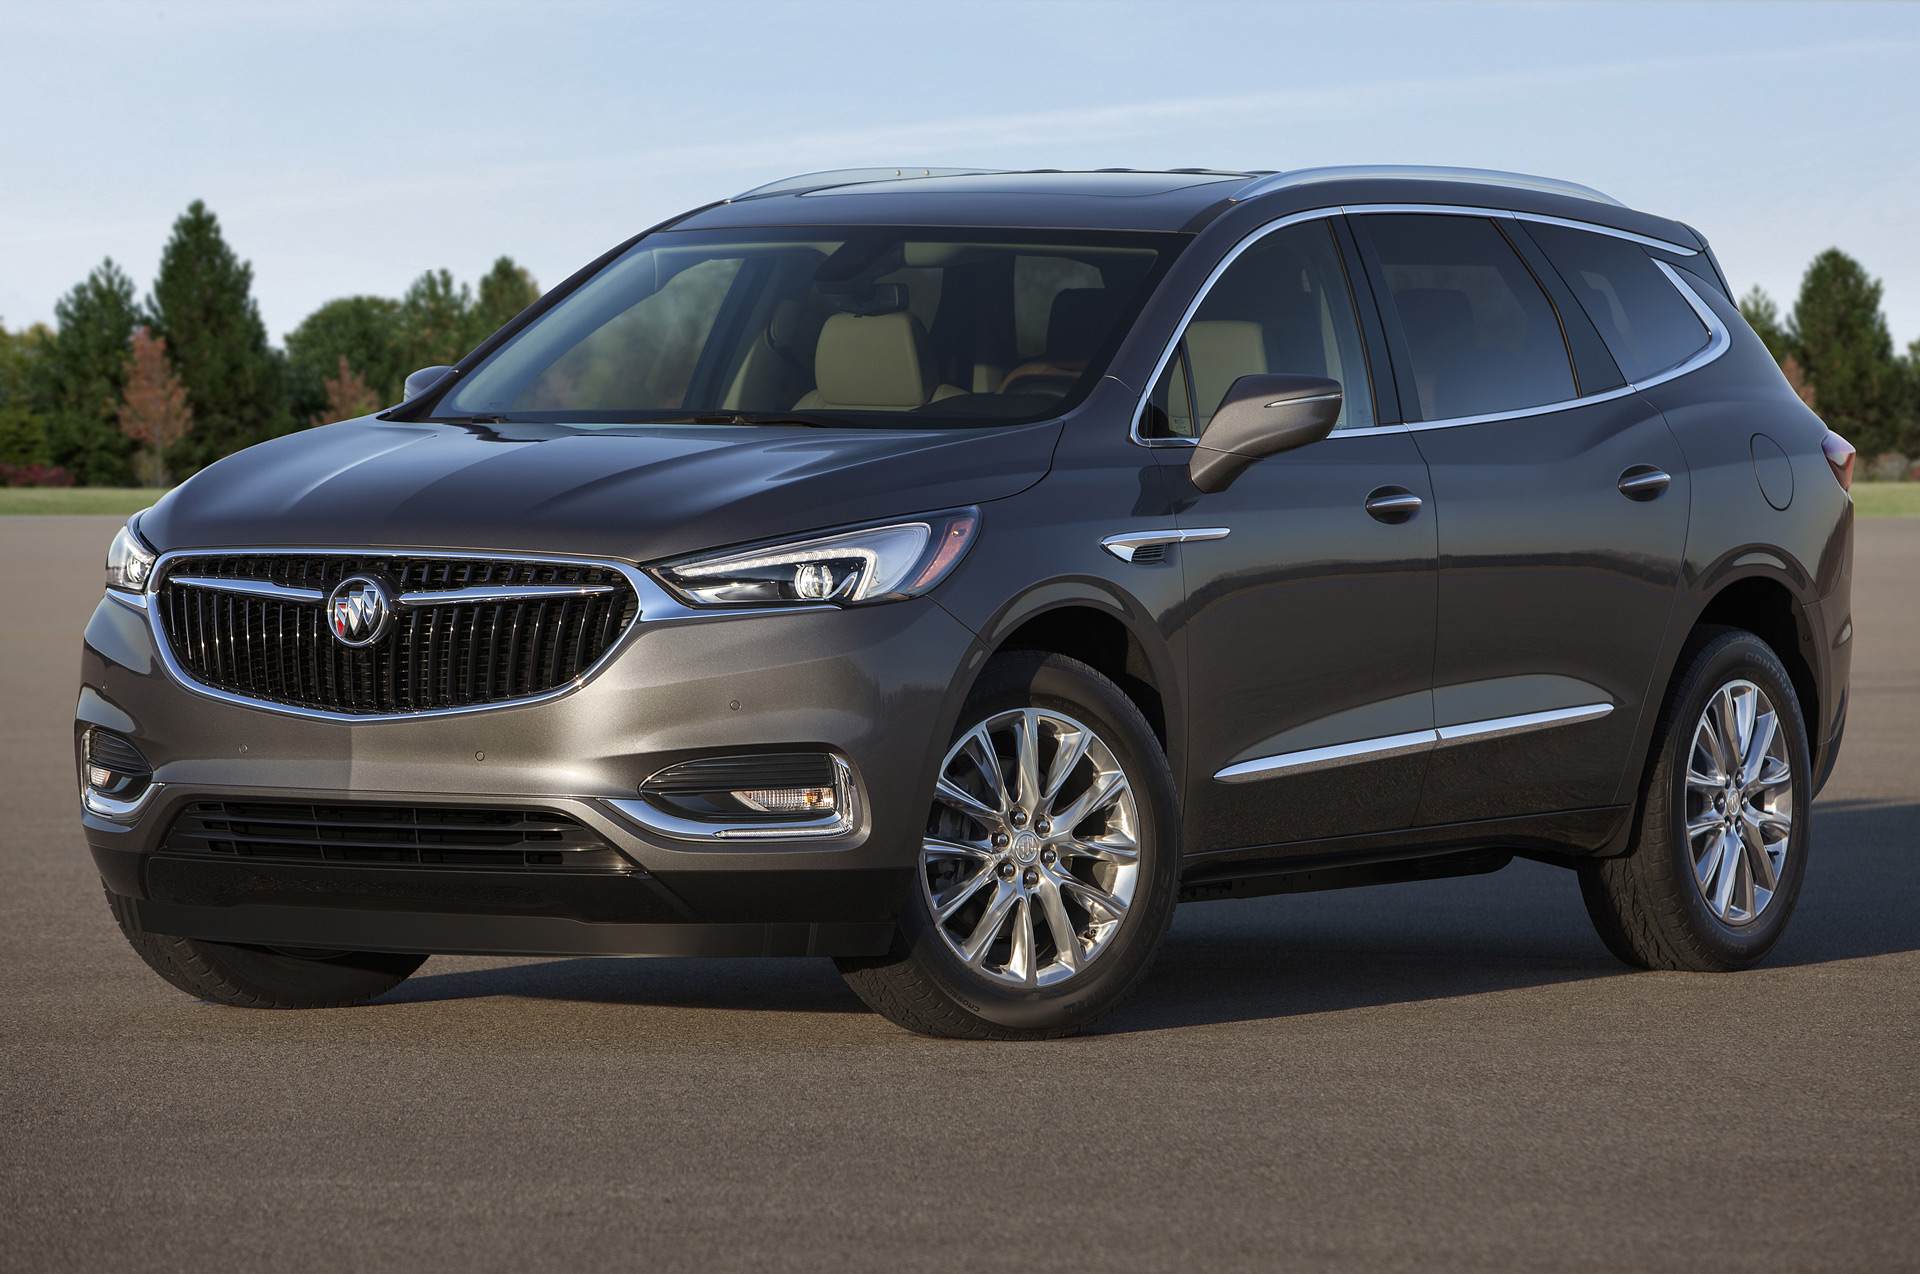 2018 Buick Enclave Review Ratings Specs Prices And